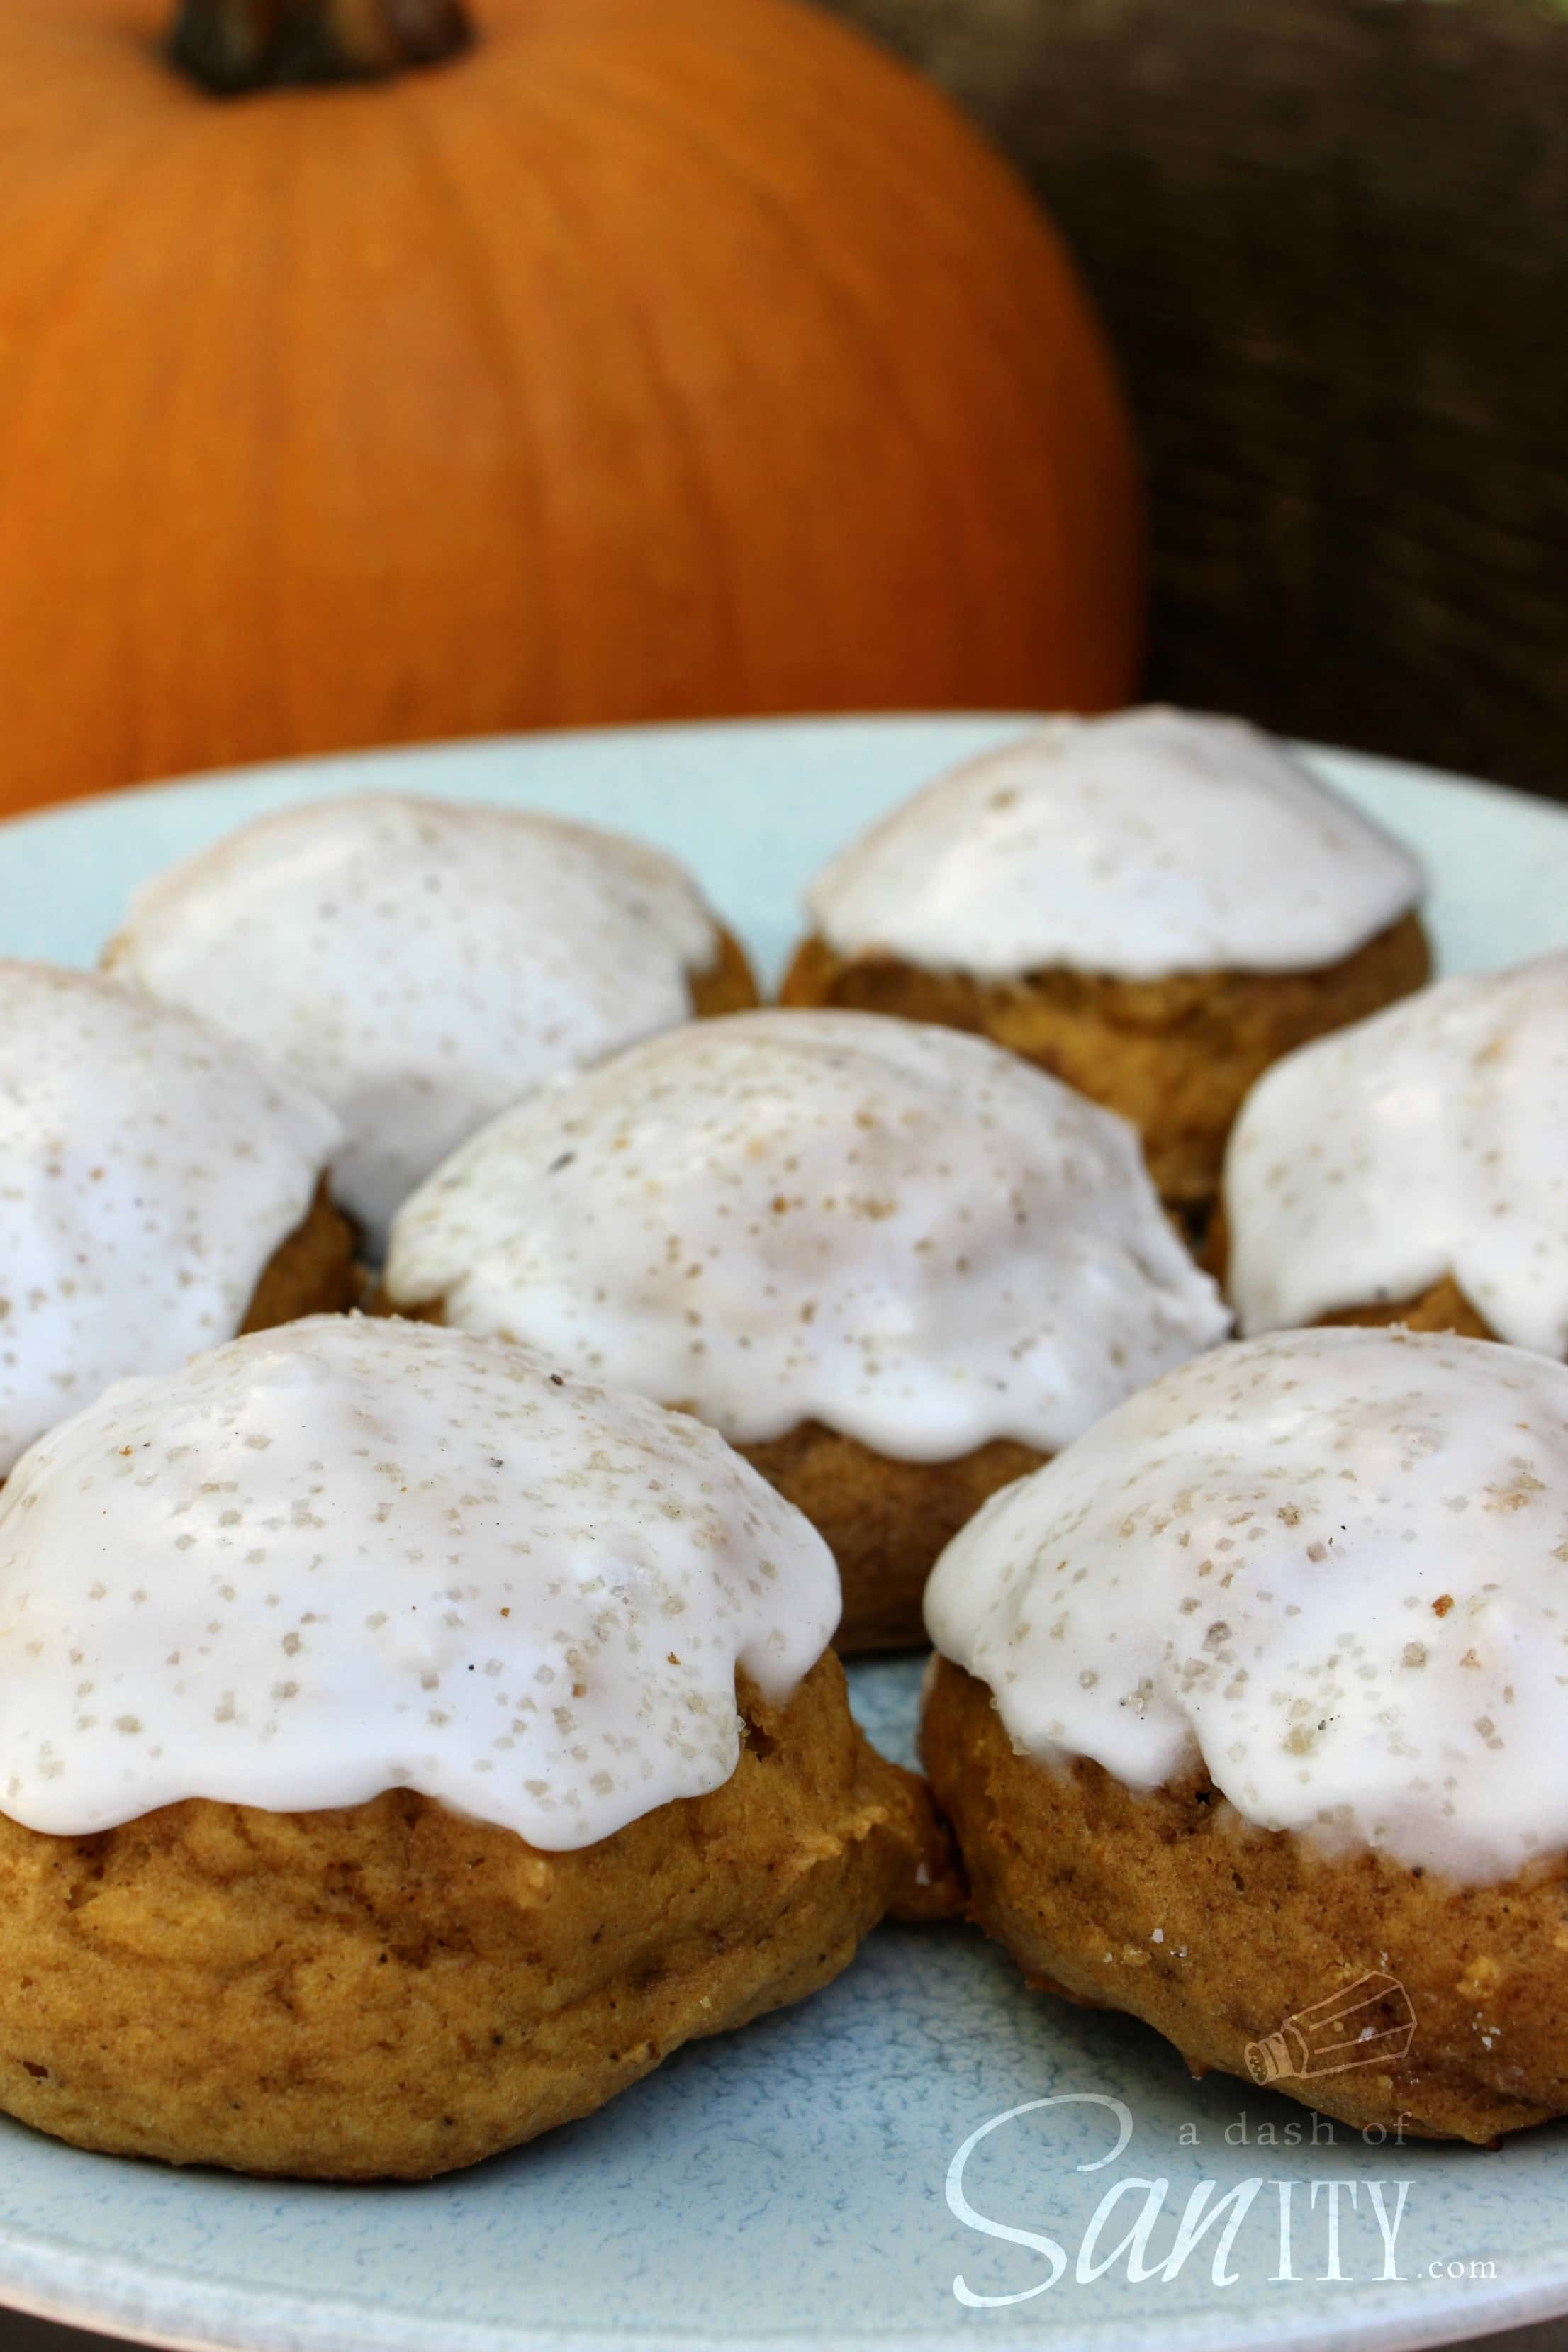 Iced Pumpkin Cookies - A Dash of Sanity